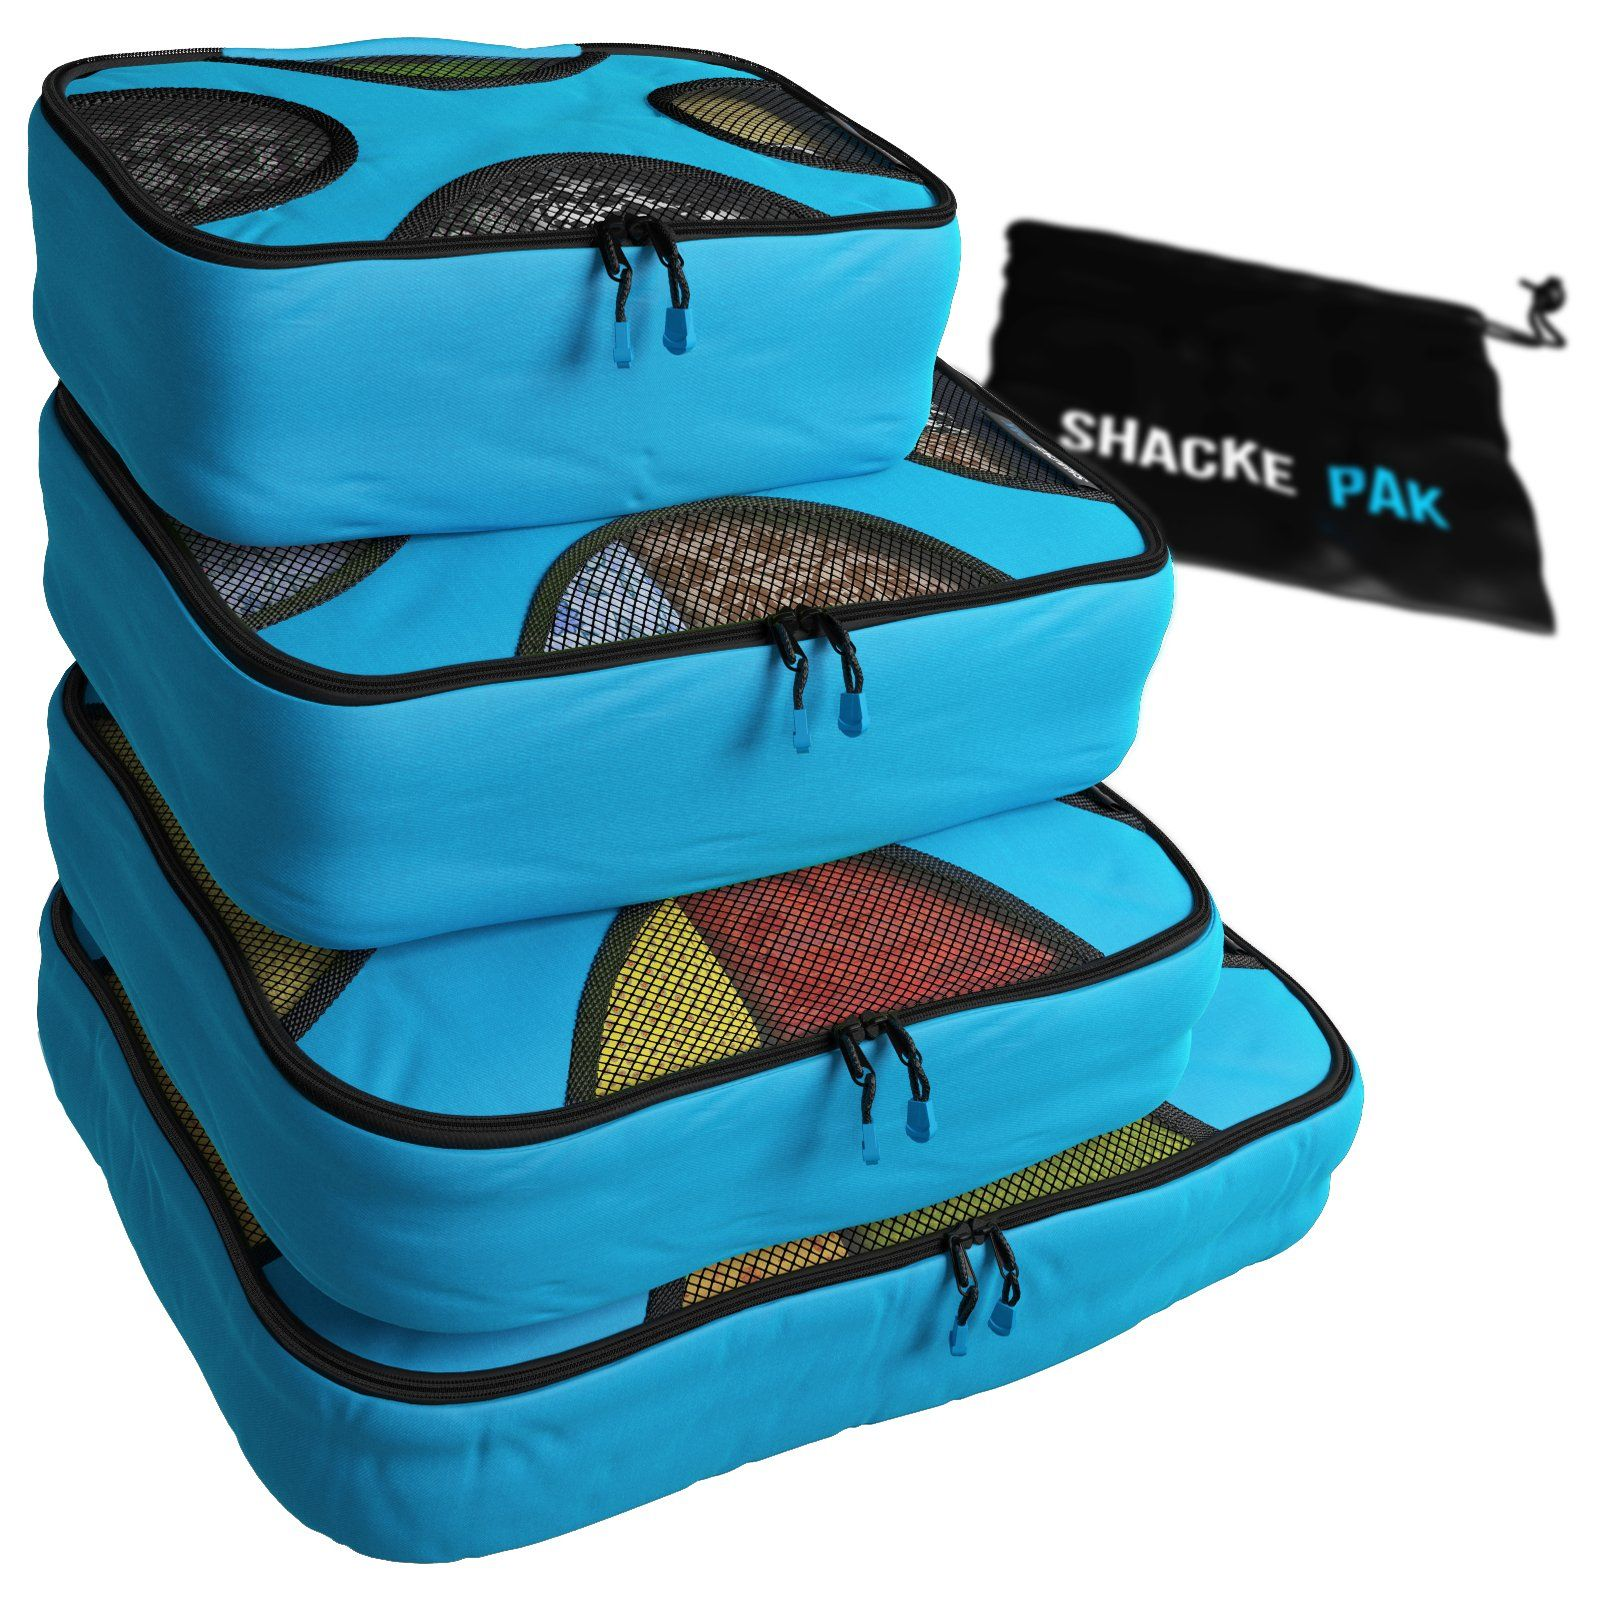 Shacke Pak 4 Set Packing Cubes Travel Organizers with Laundry Bag